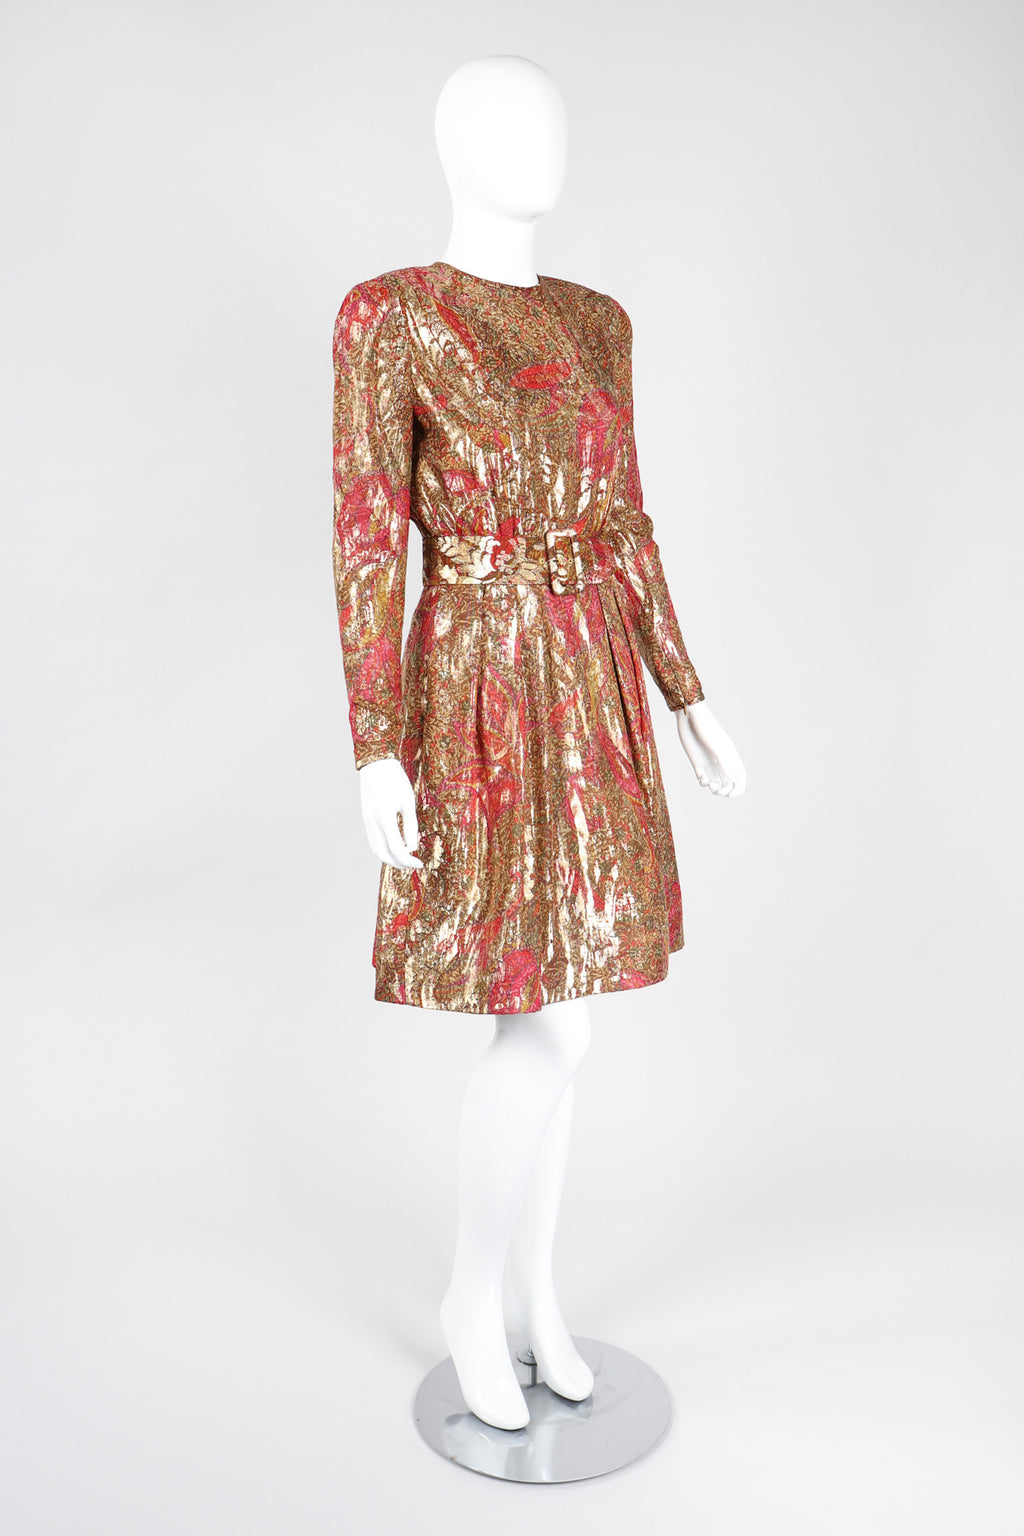 Recess Los Angeles Vintage Stanley Platos Martin Ross Metallic Paisley Lamé Cocktail Dress